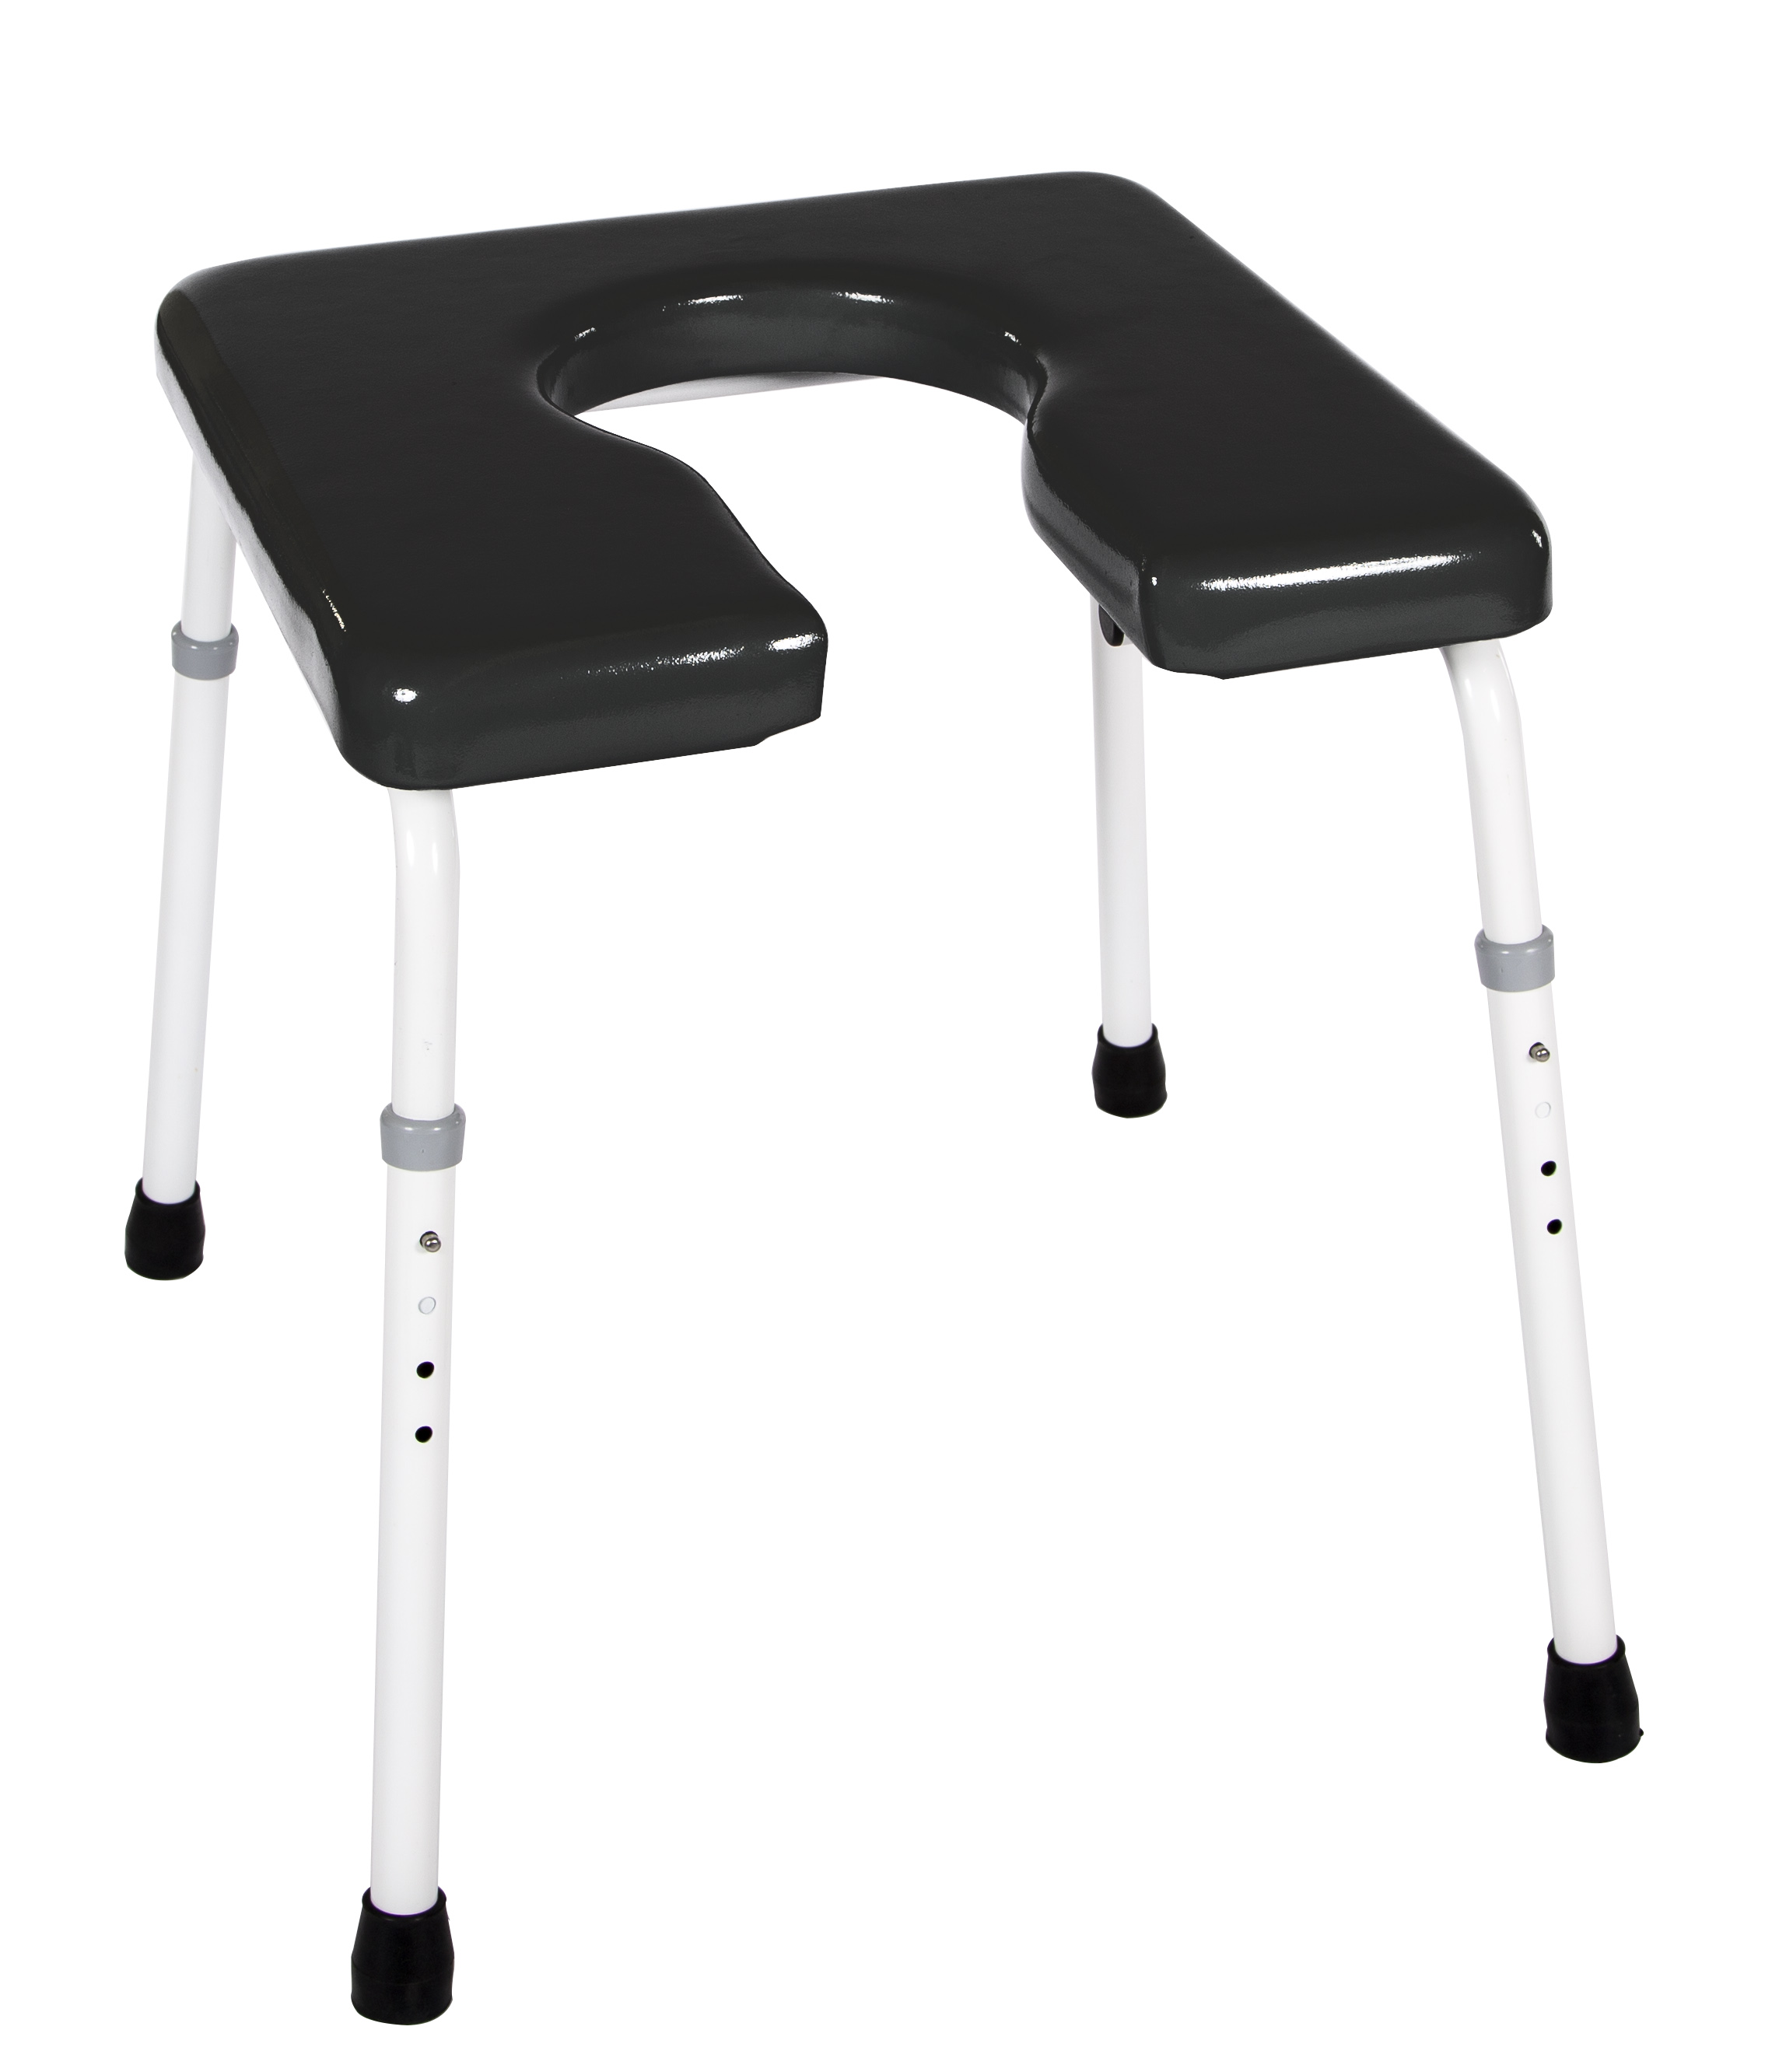 Remarkable Activeaid Raised Toilet Seat Short Links Chair Design For Home Short Linksinfo